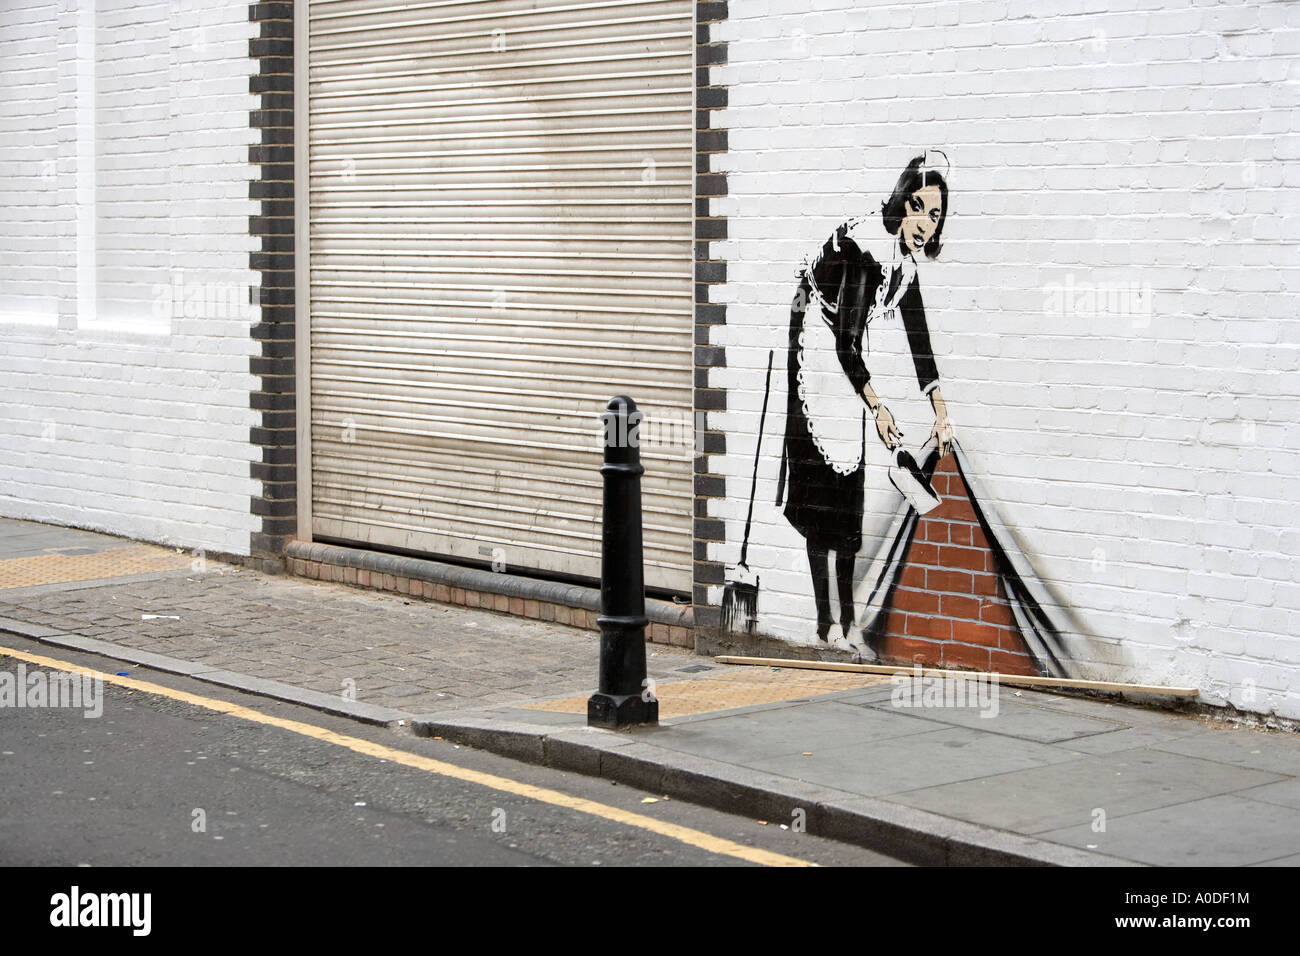 Street art by the atrist Banksy in Camden London 2006 Titled Chambermaid - Stock Image